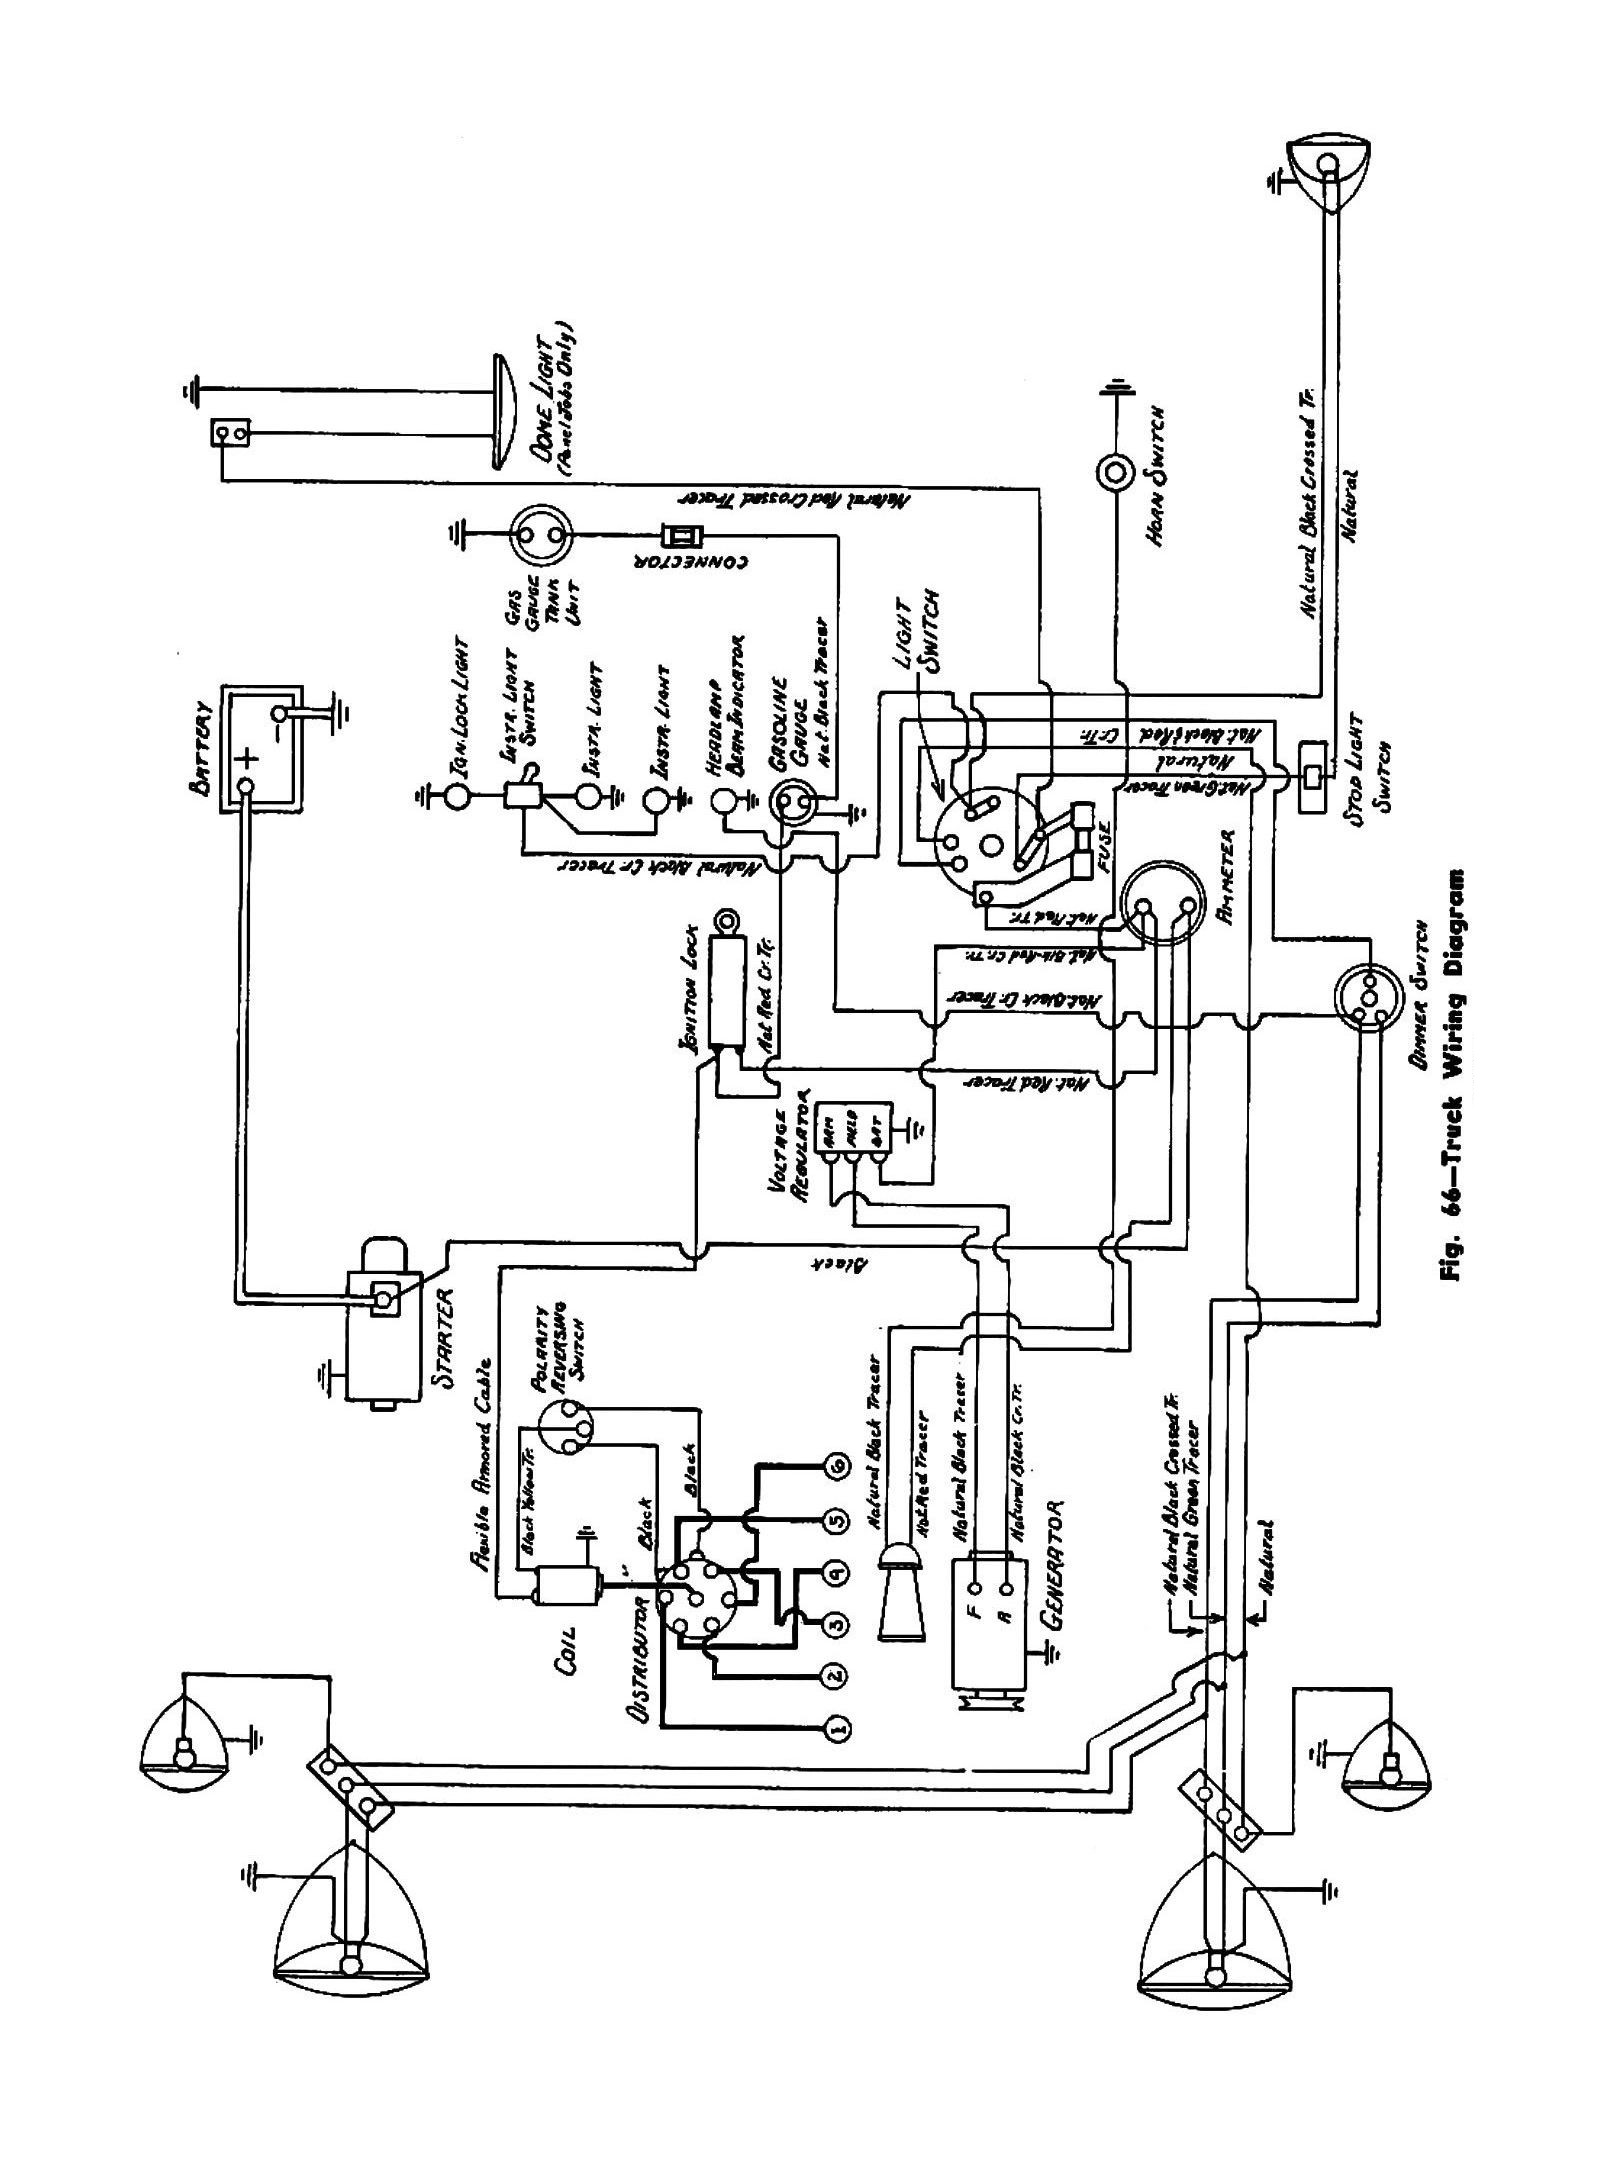 45truck truck wiring diagram 1986 chevy truck wiring diagram \u2022 free wiring 1987 toyota pickup fuse box diagram at honlapkeszites.co